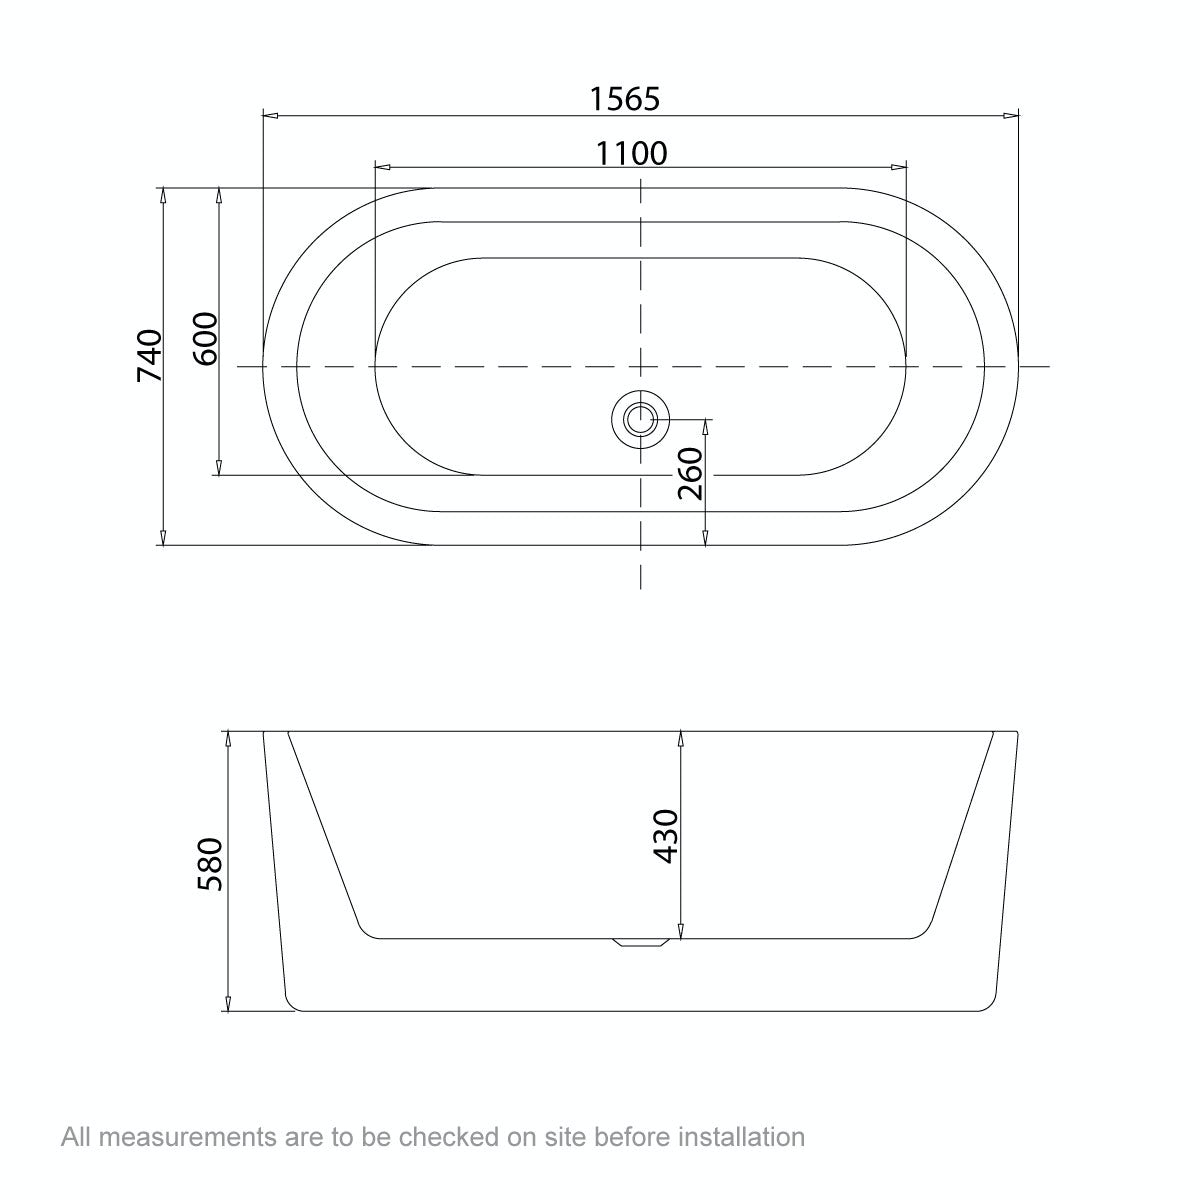 Dimensions for 1565 x 740